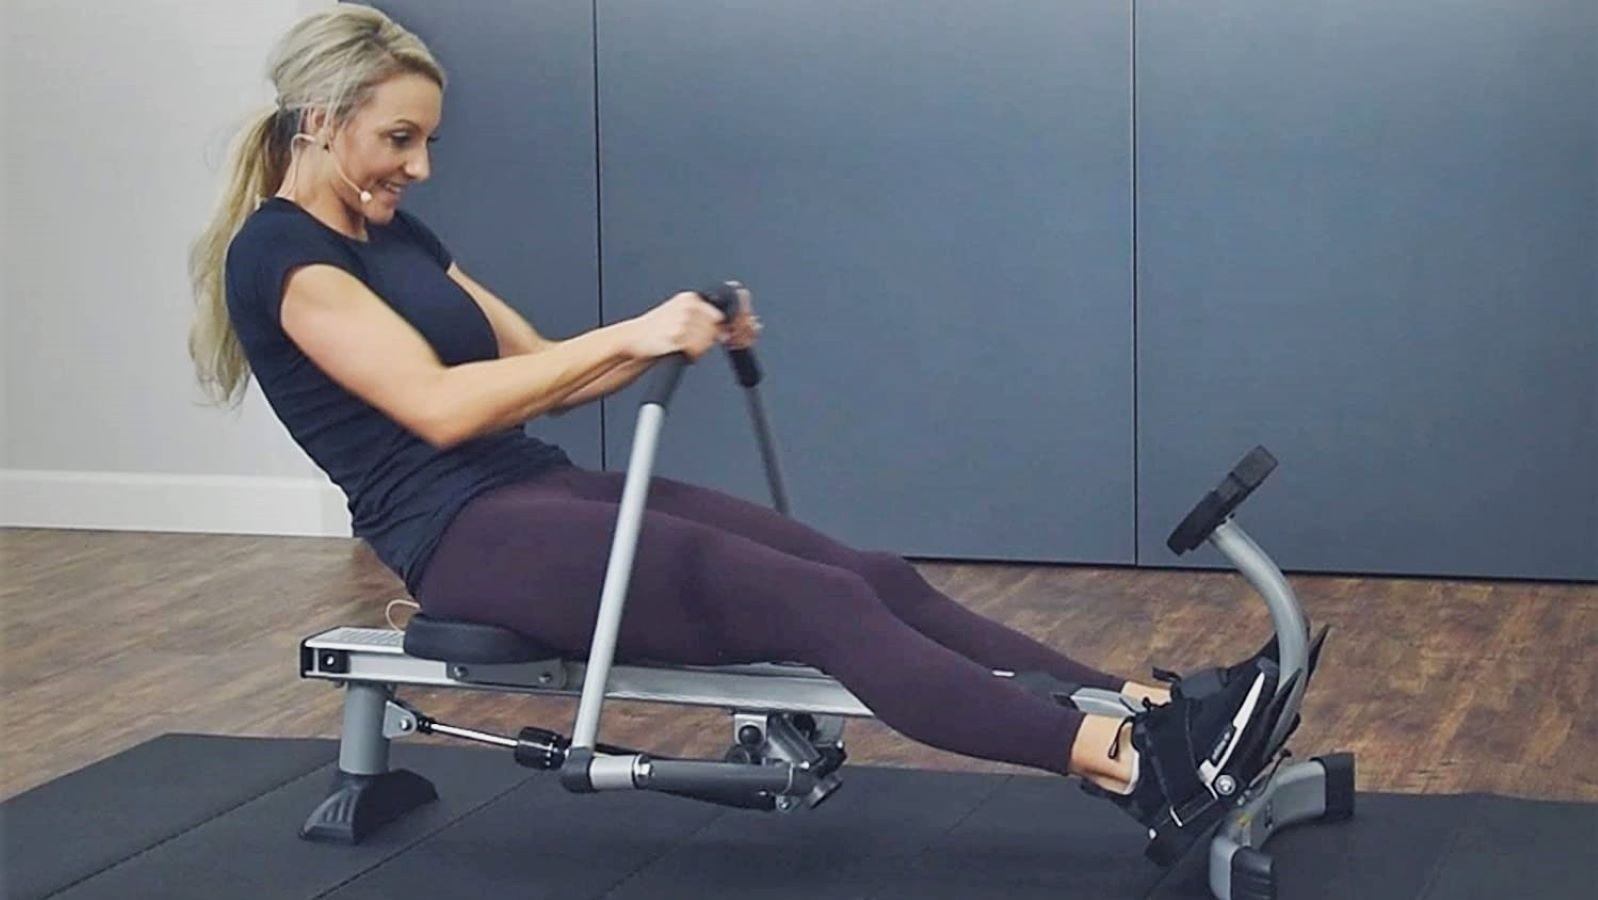 A woman using the Stamina BodyTrac Glider Rowing Machine 1052.